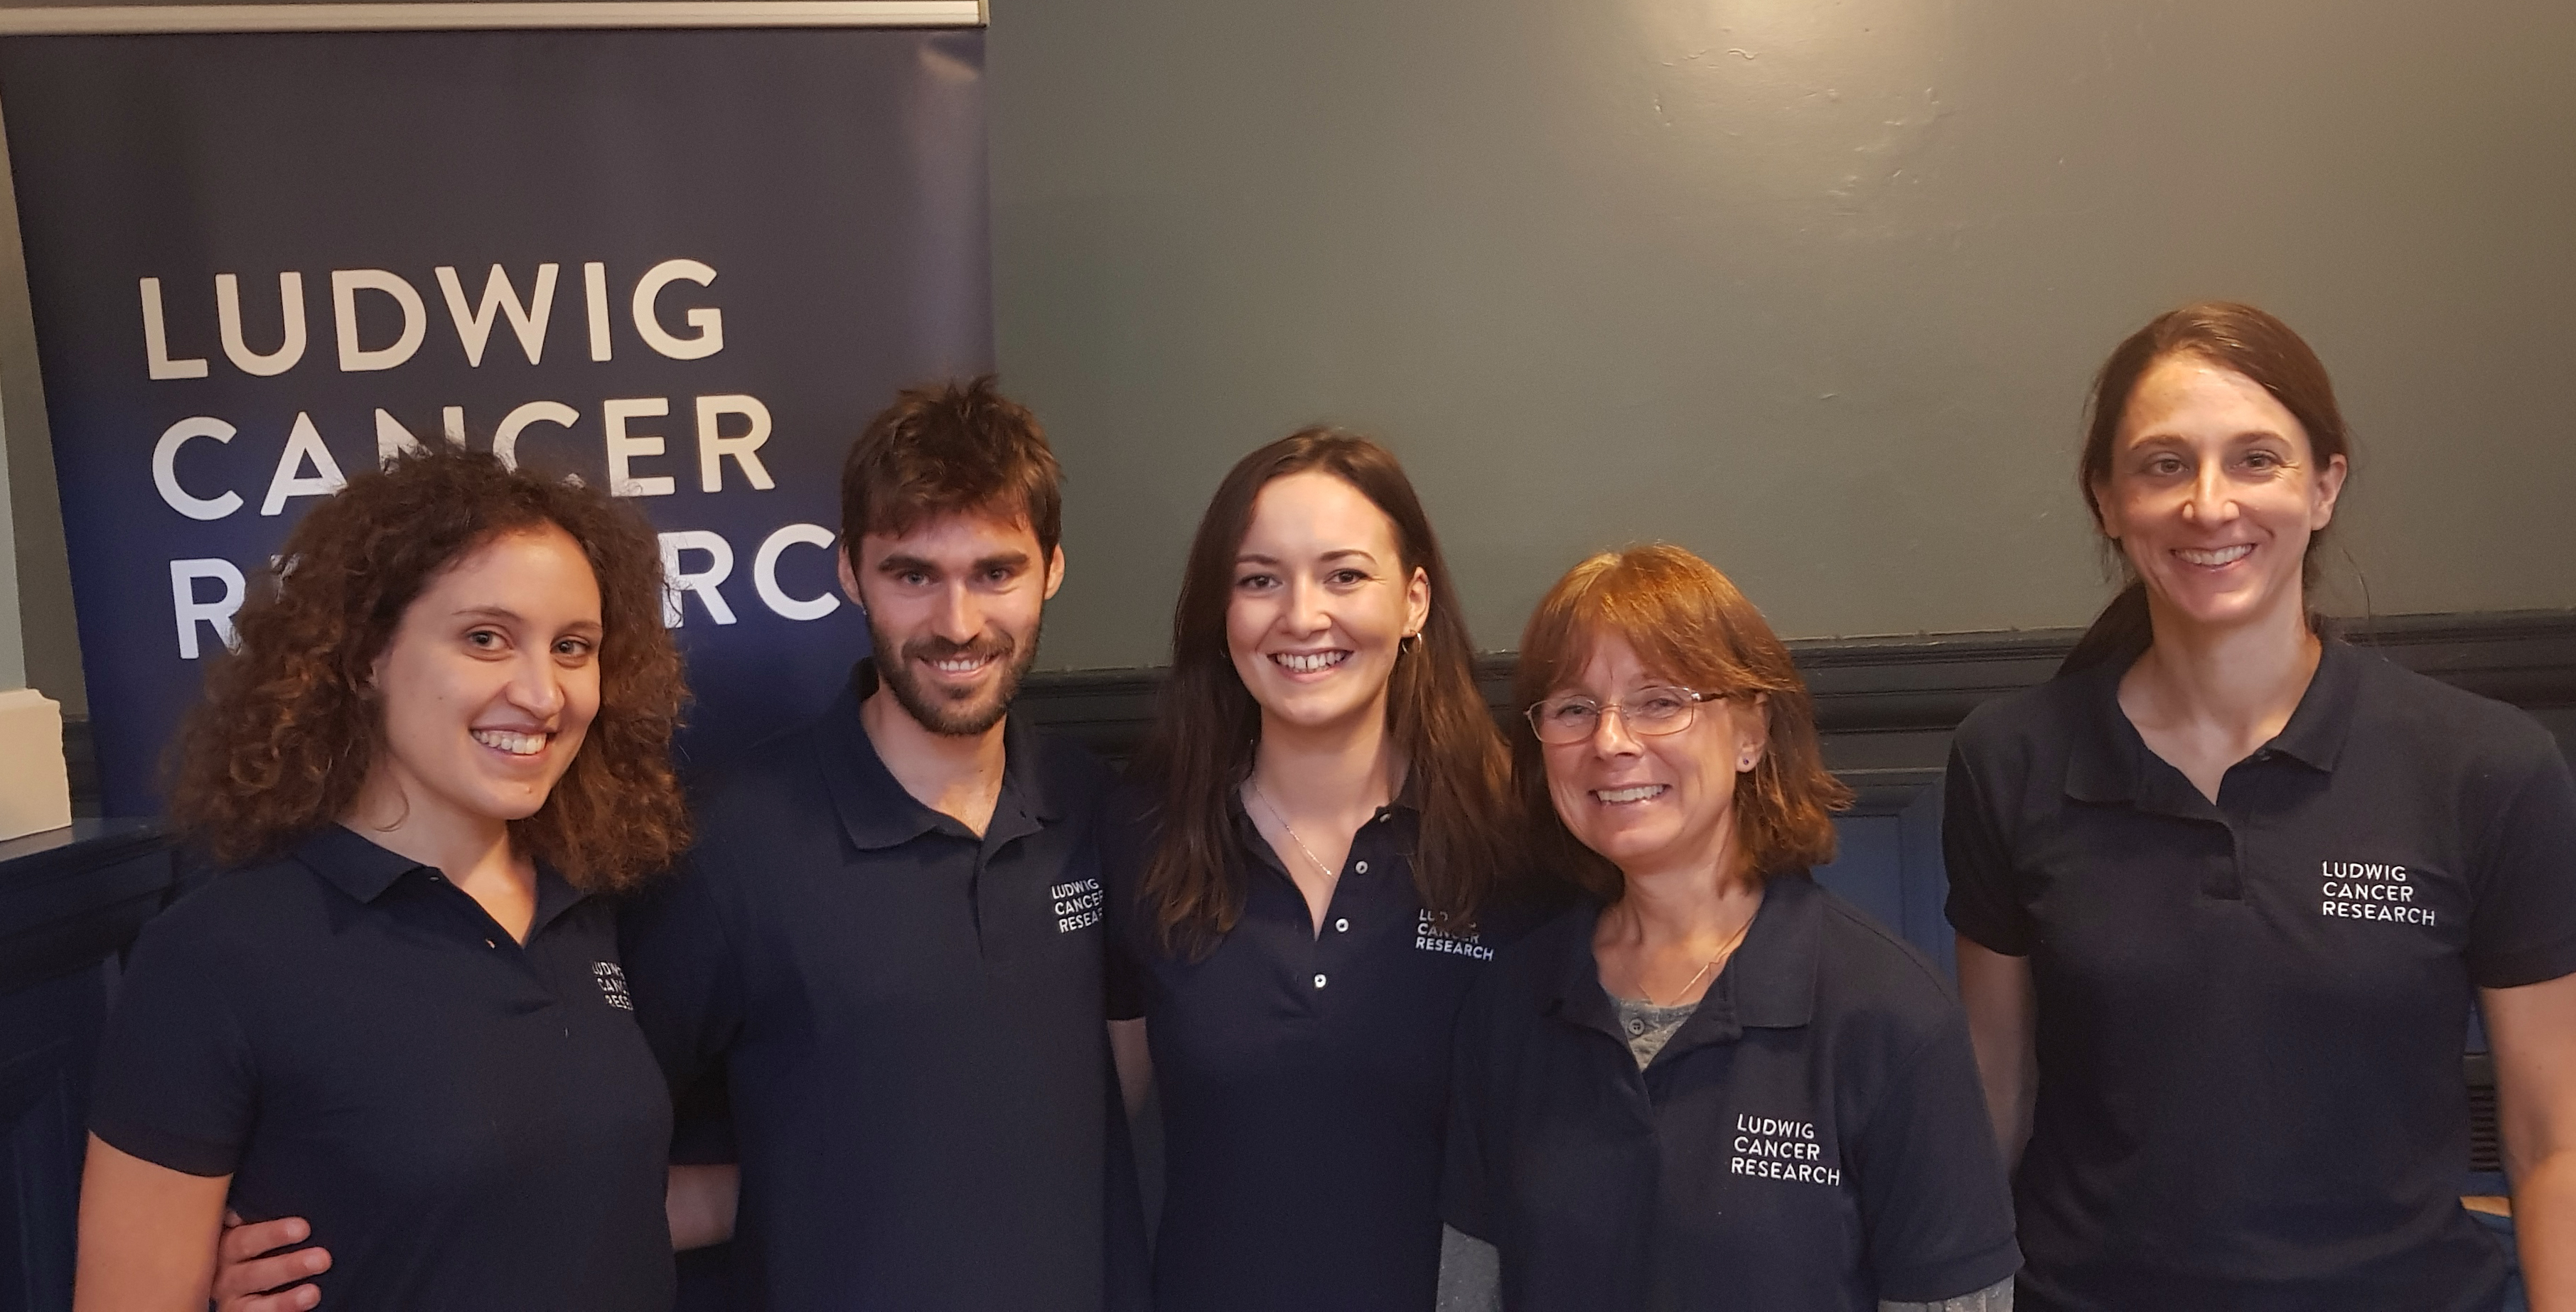 5 Ludwig Oxford volunteers posing in front of the Ludwig Cancer Research banner at the IF Oxford event 2018